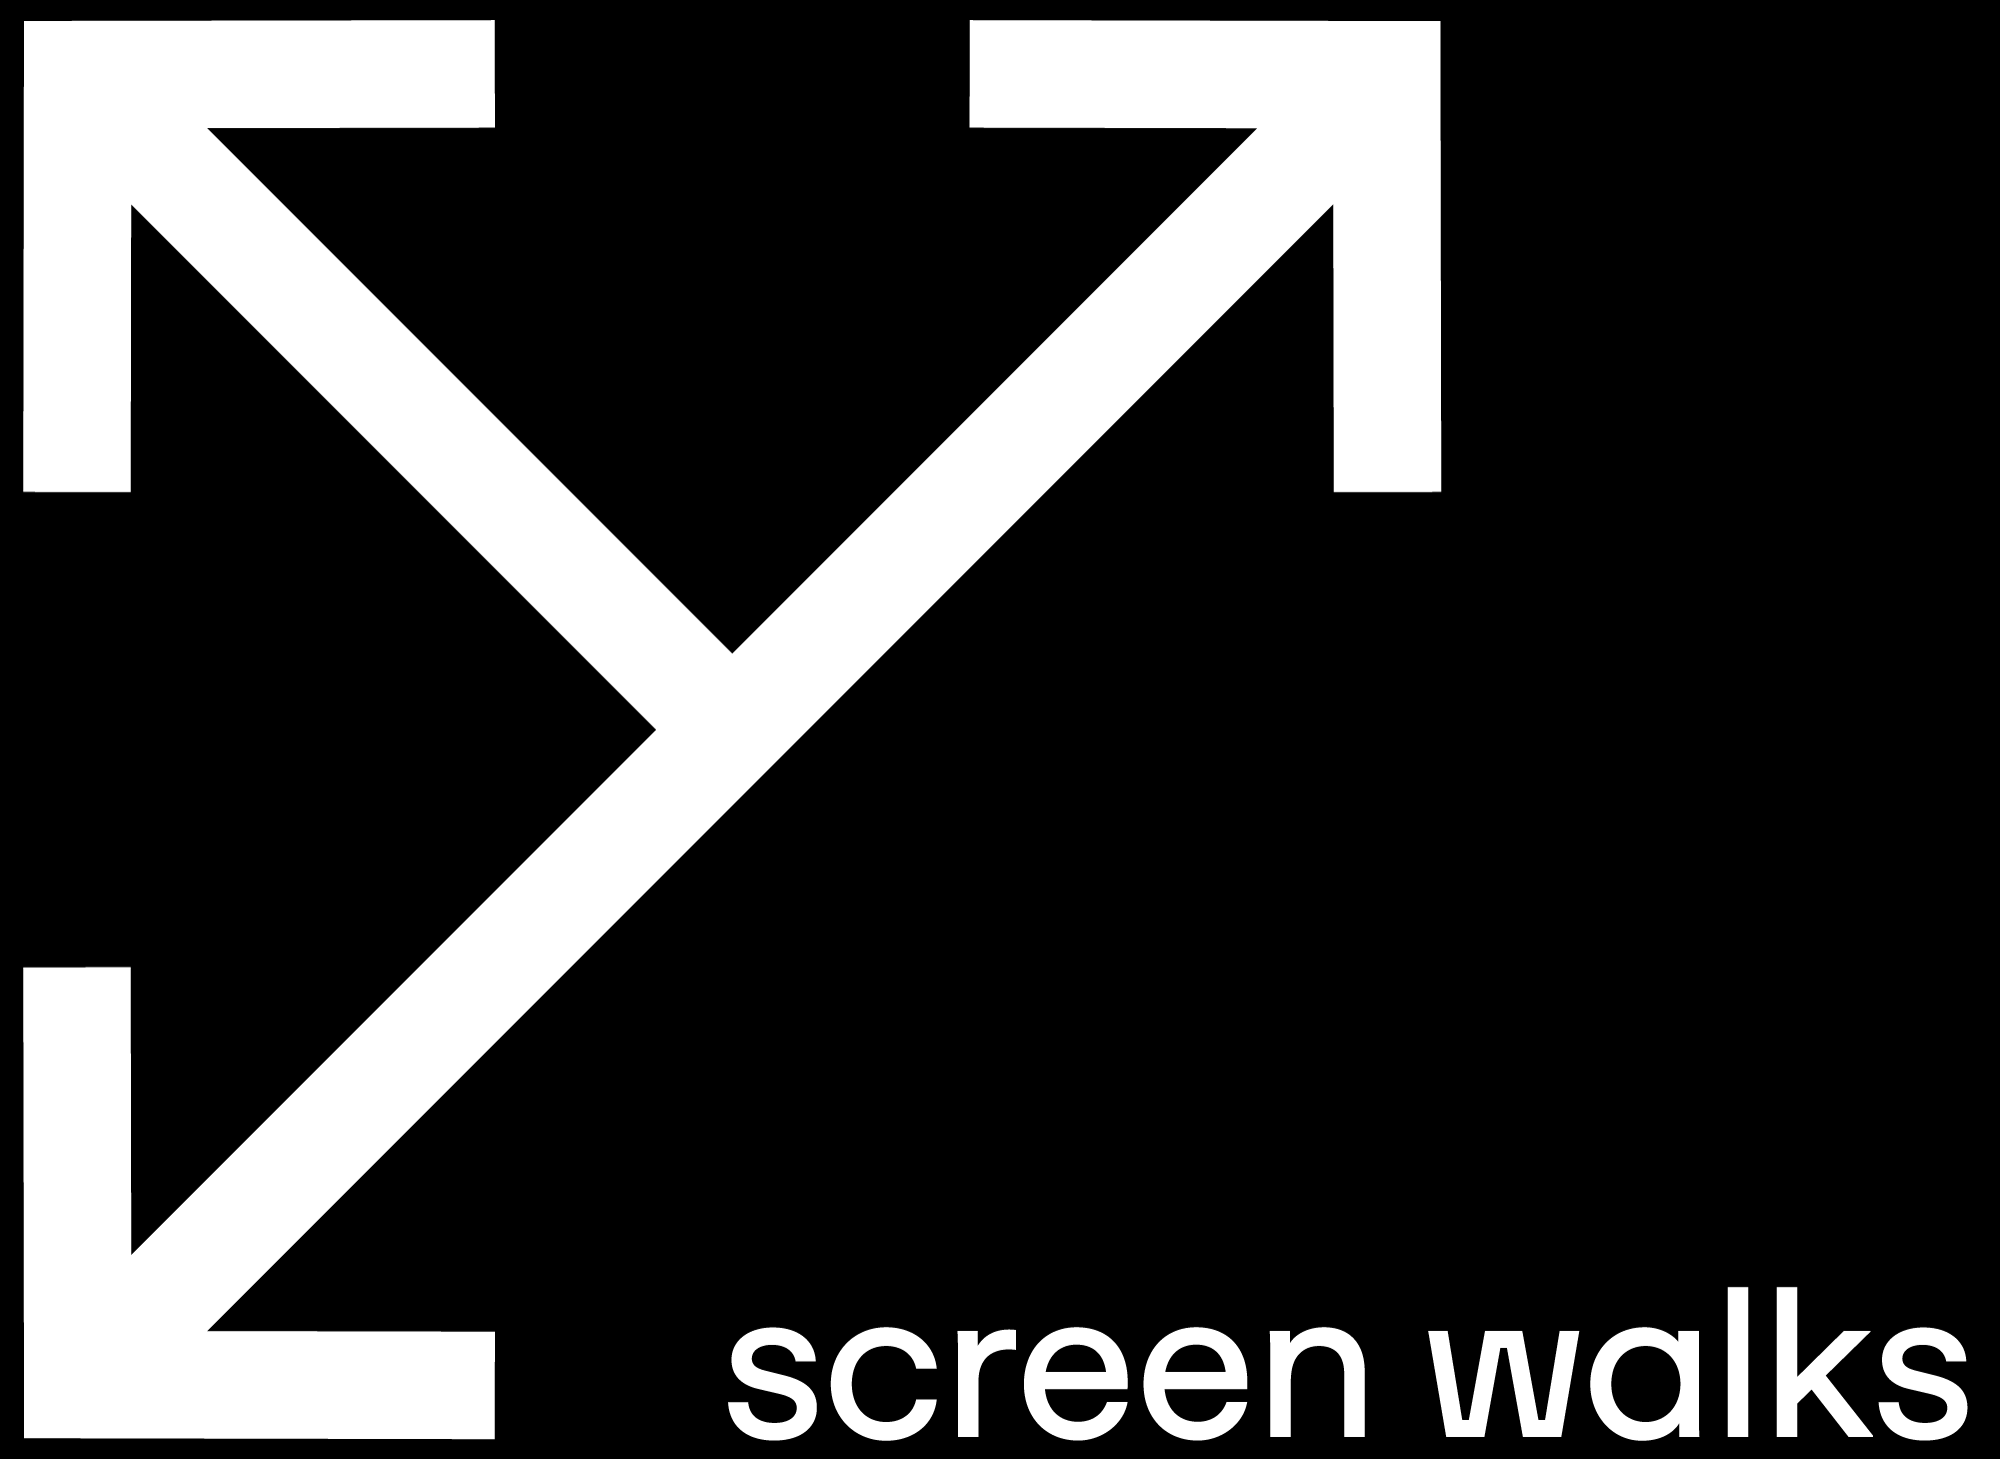 Screen walks